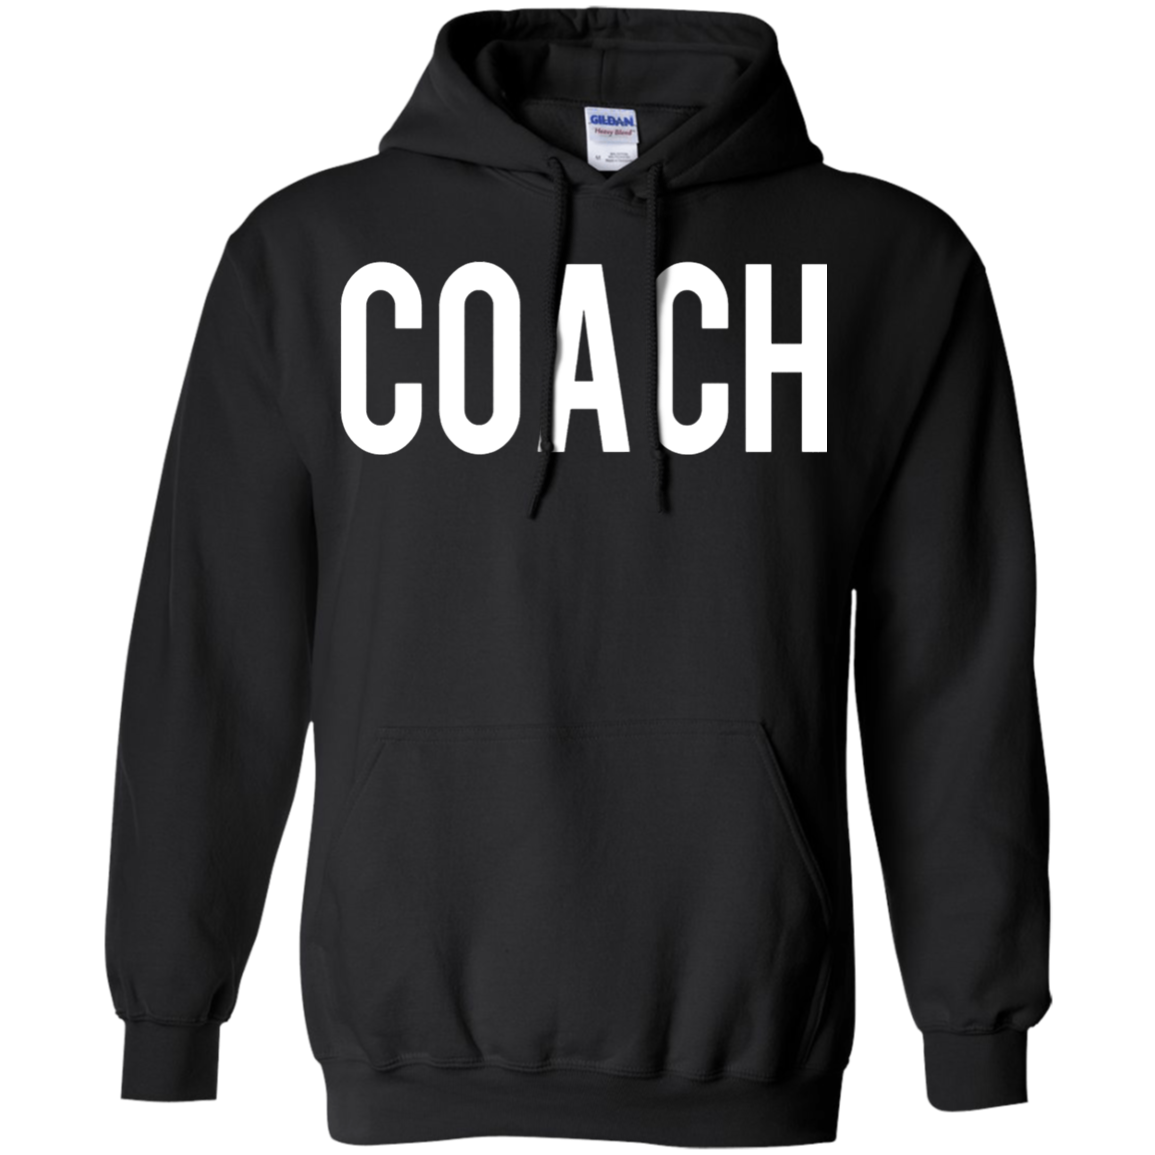 COACH Shirt   T Shirt For Men   Women Coaches